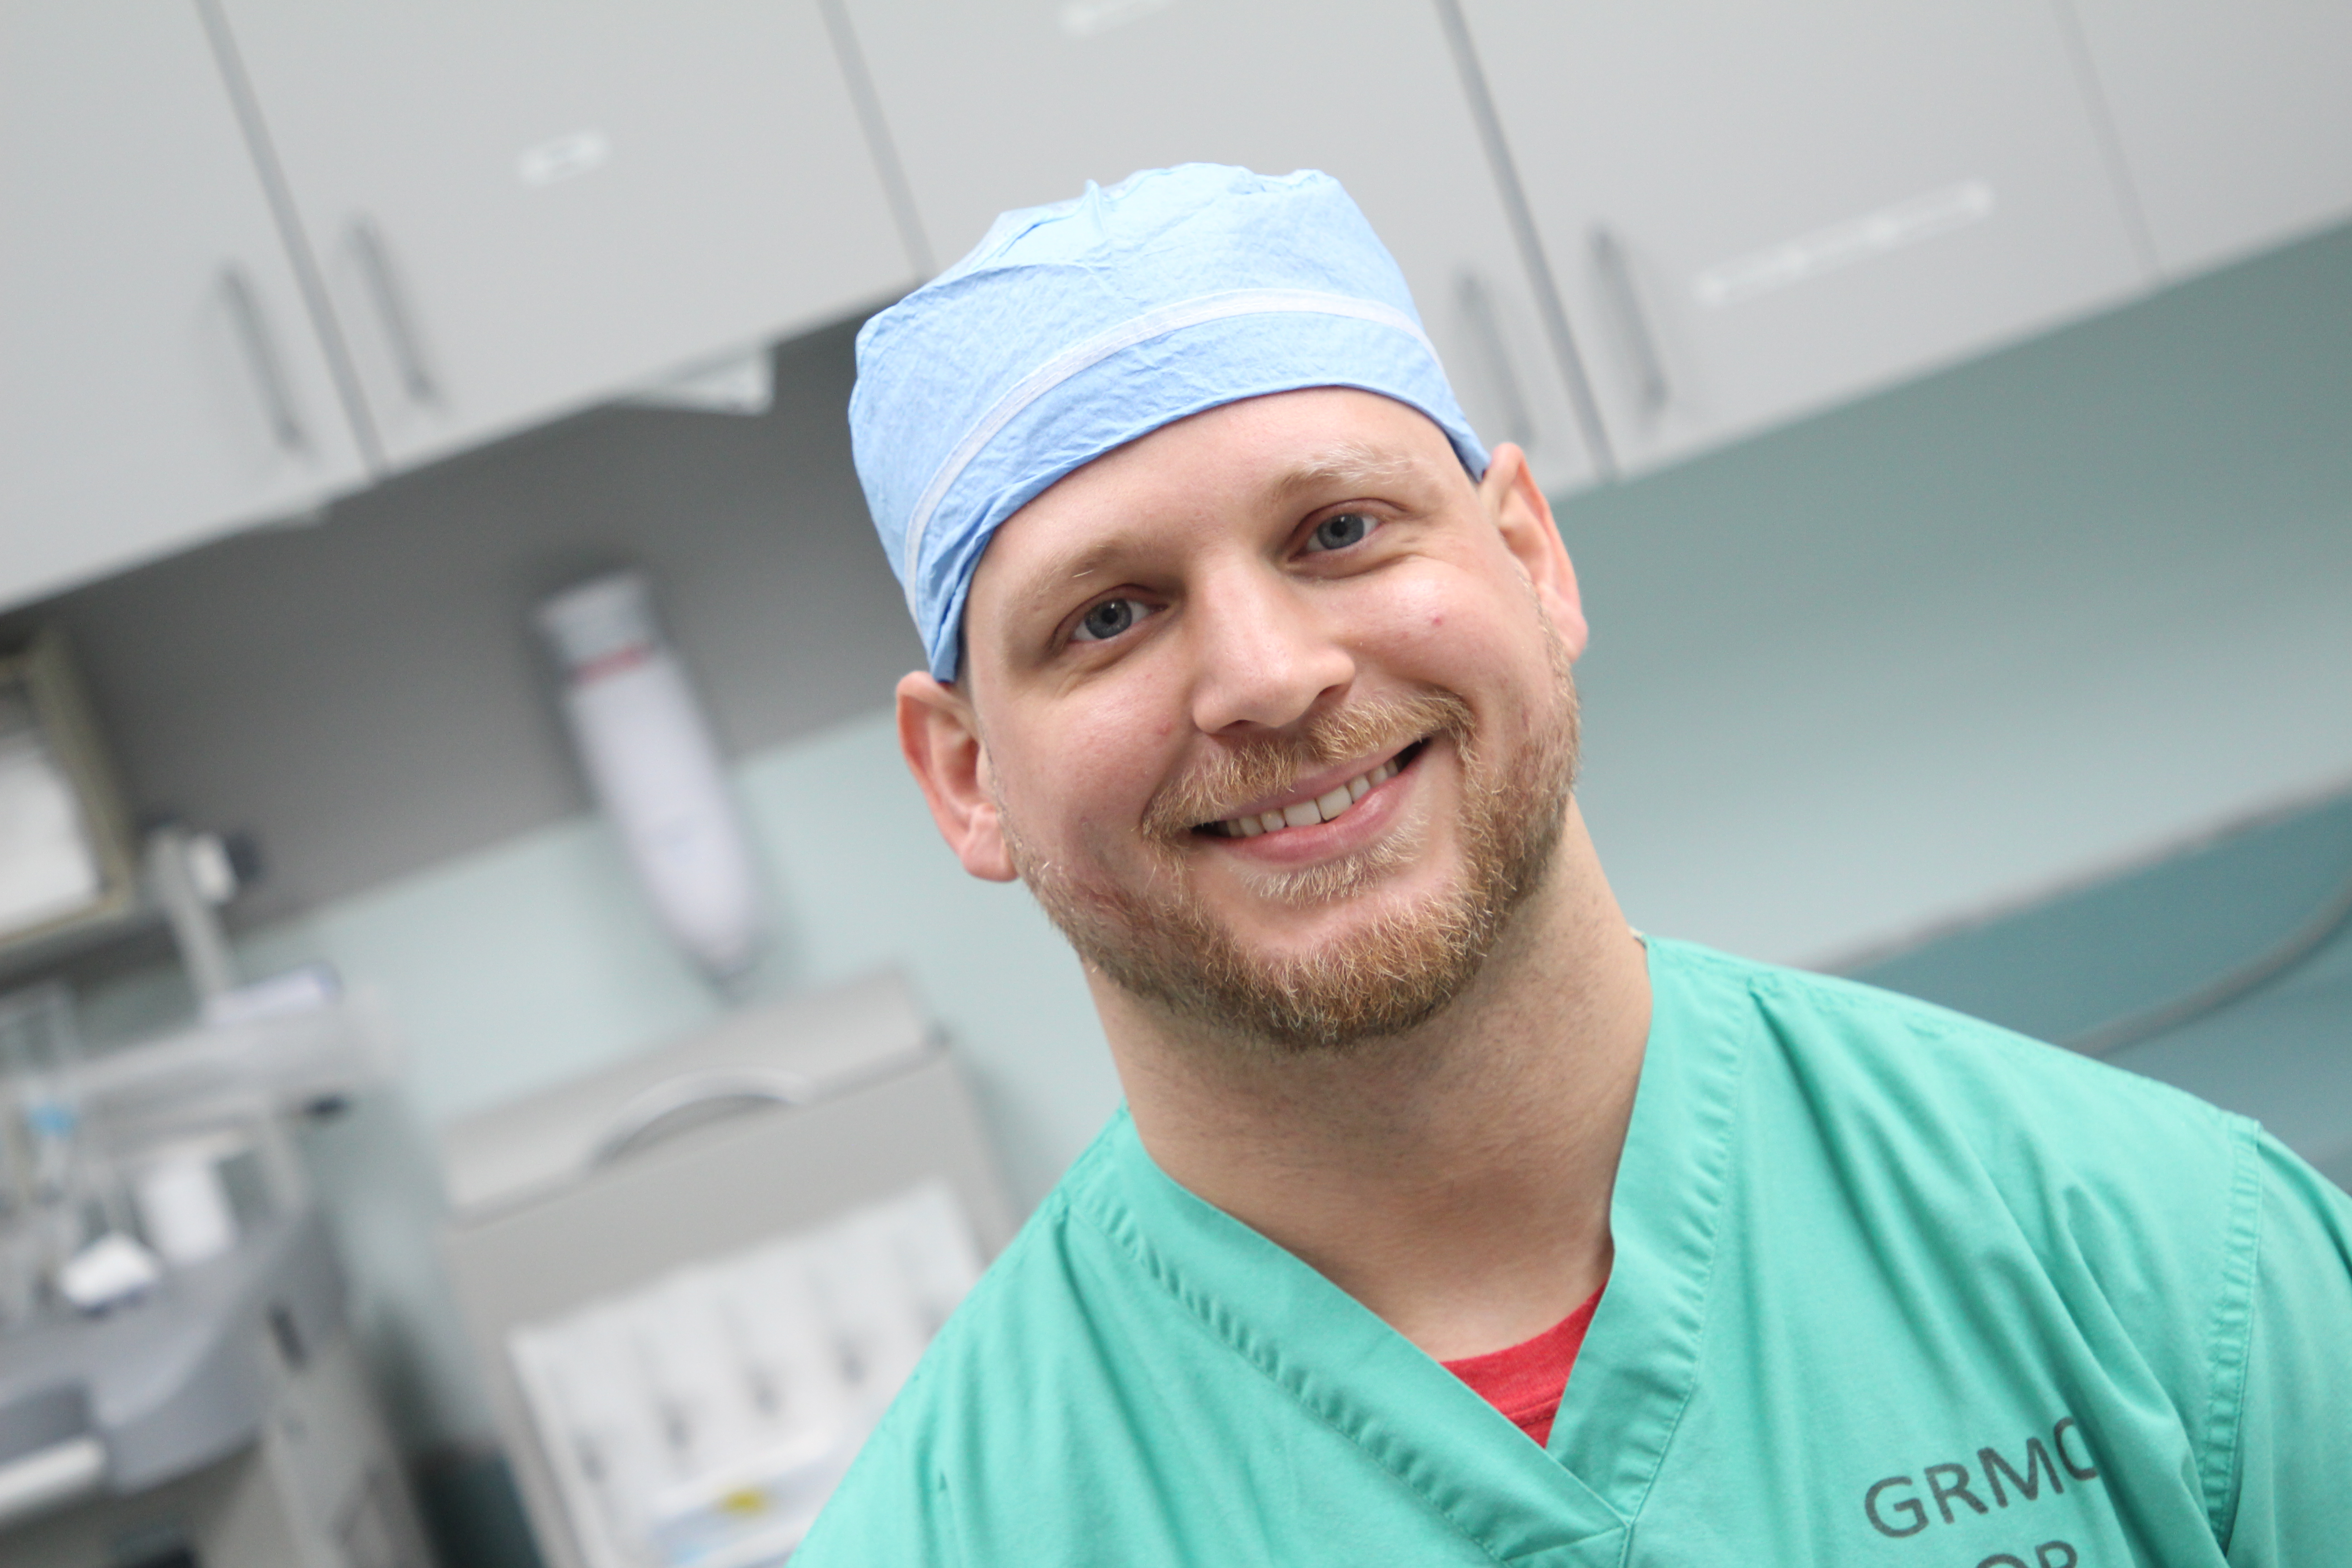 David W. Hill, CRNA, MSN